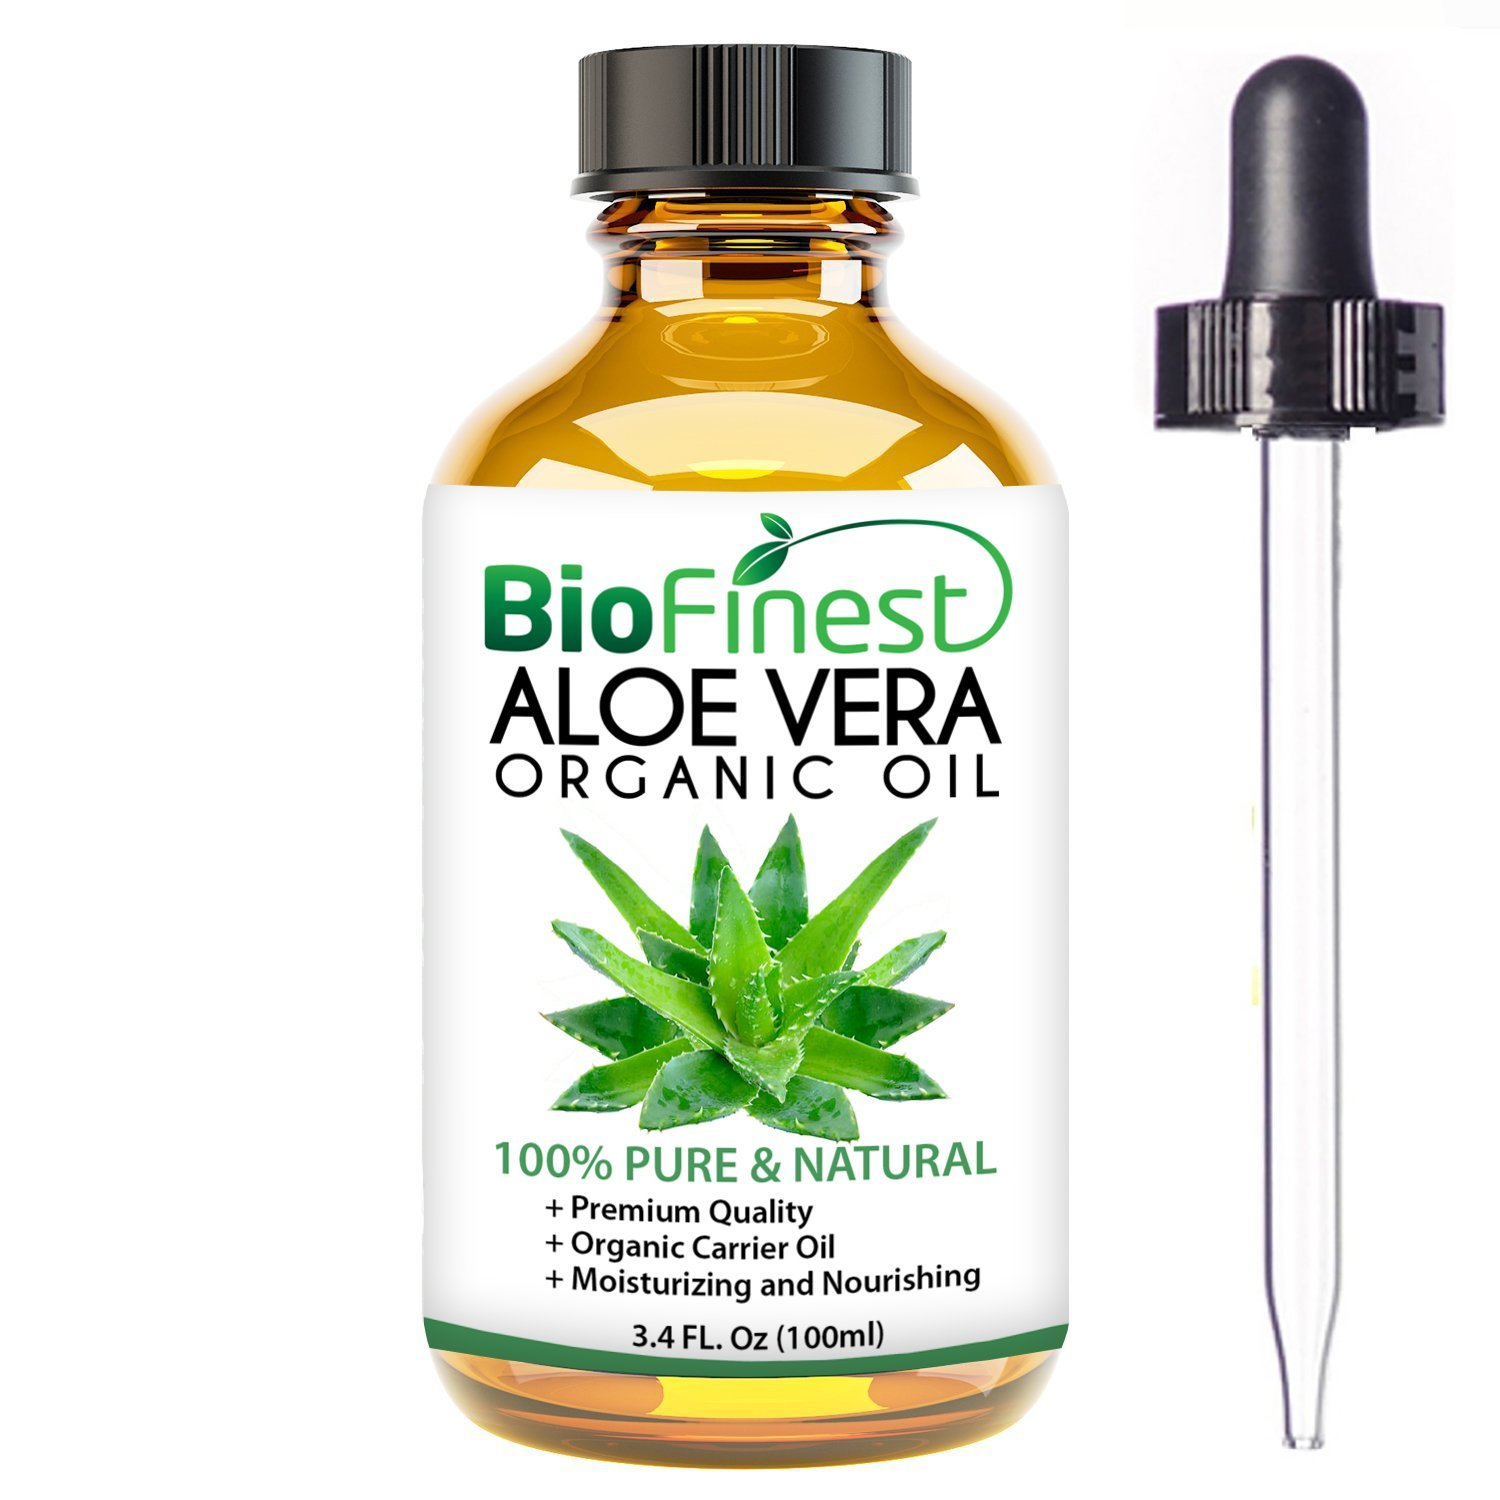 Biofinest Aloe Vera Organic Oil - 100% Pure, Natural, Cold-Pressed - Premium Quality - Best Moisturizer For Hair, Face & Skin - Boost Wound Recovery - FREE E-Book (10ml)